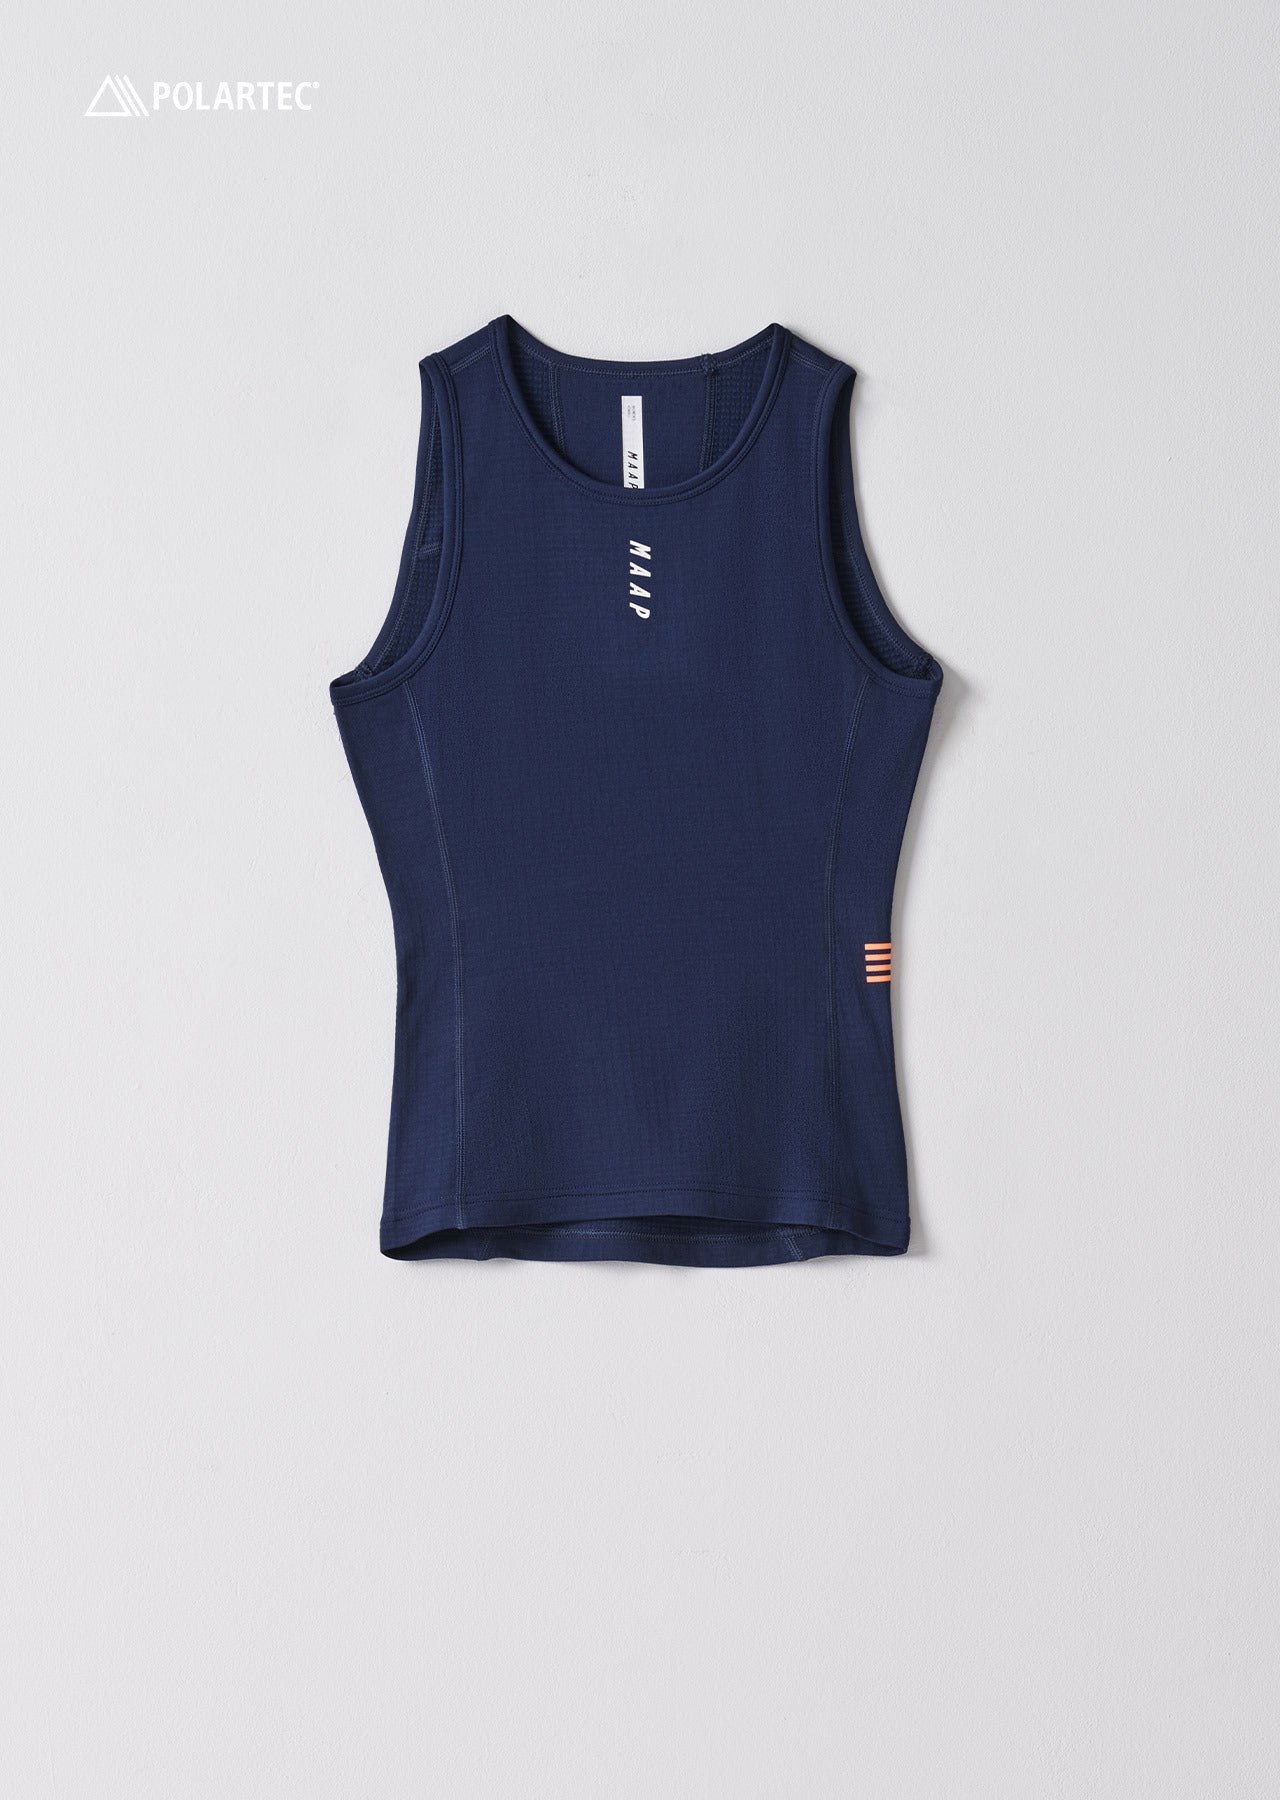 Women's Thermal Base Layer Vest